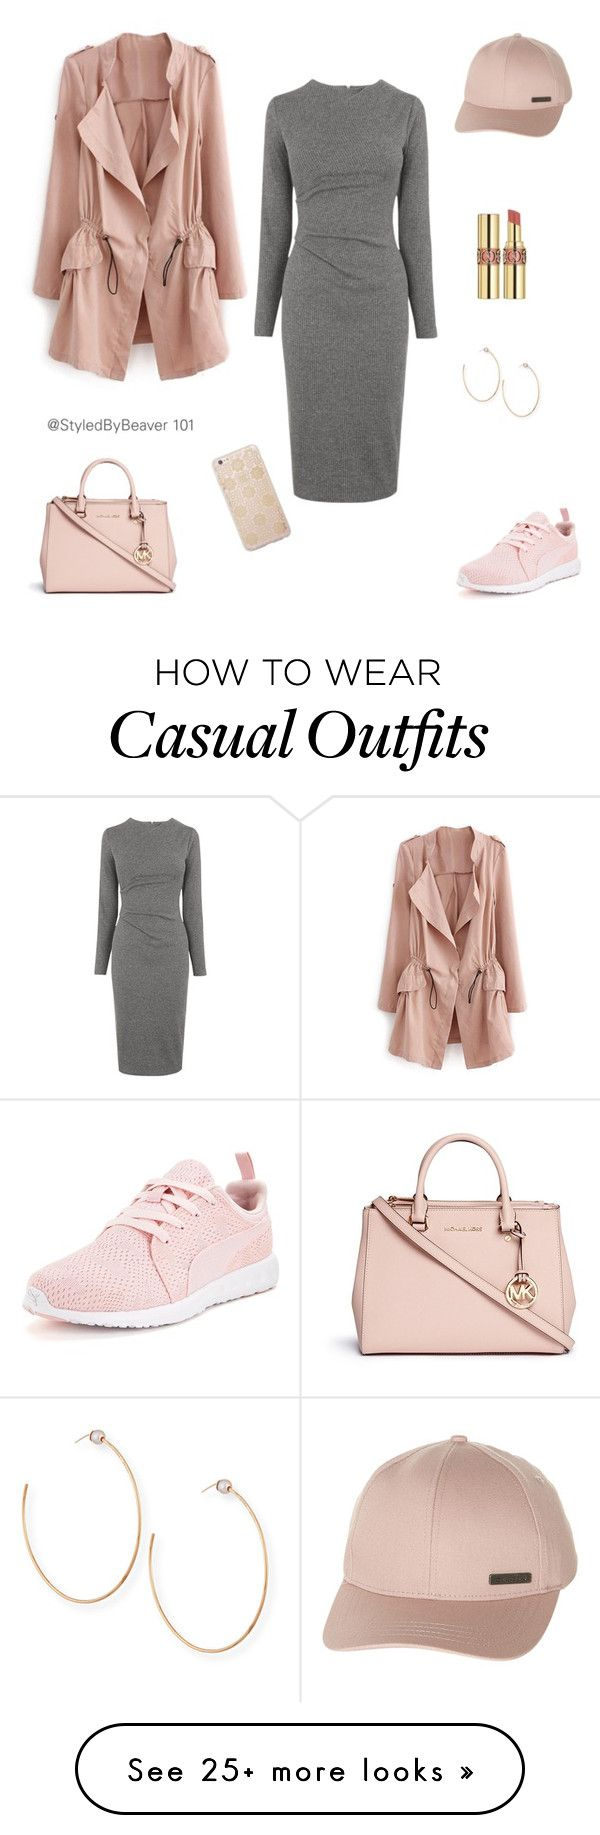 WINTER FASHION| CASUALLY BLUSHED by beavers-mum on Polyvore featuring Whistles, Billabong, Michael Kors, Yves Saint Laurent, Puma, Vita Fede, Sonix, womens clothing, womens fashion and women